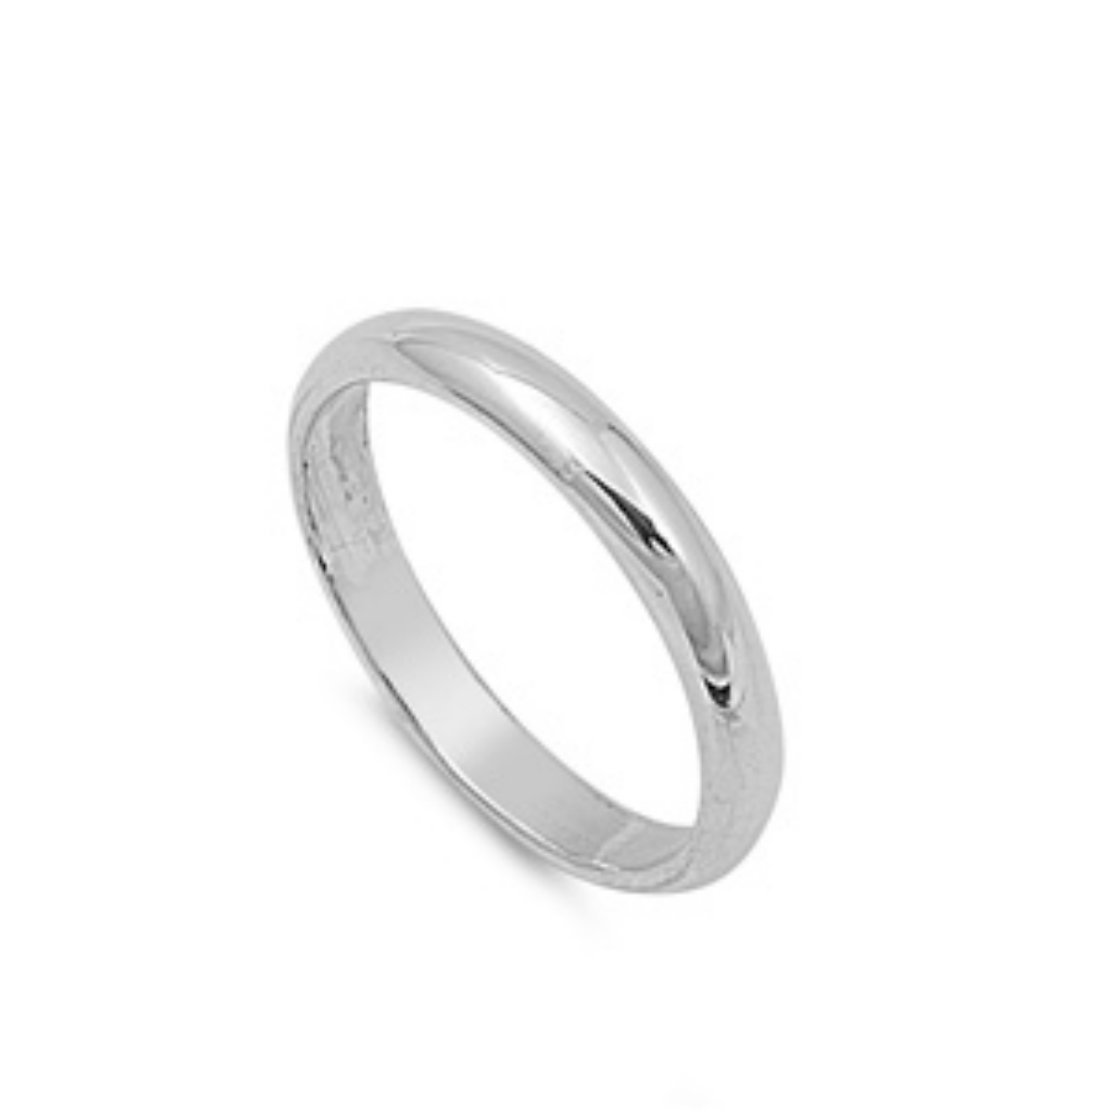 3mm Sterling Silver Toe Ring (3)